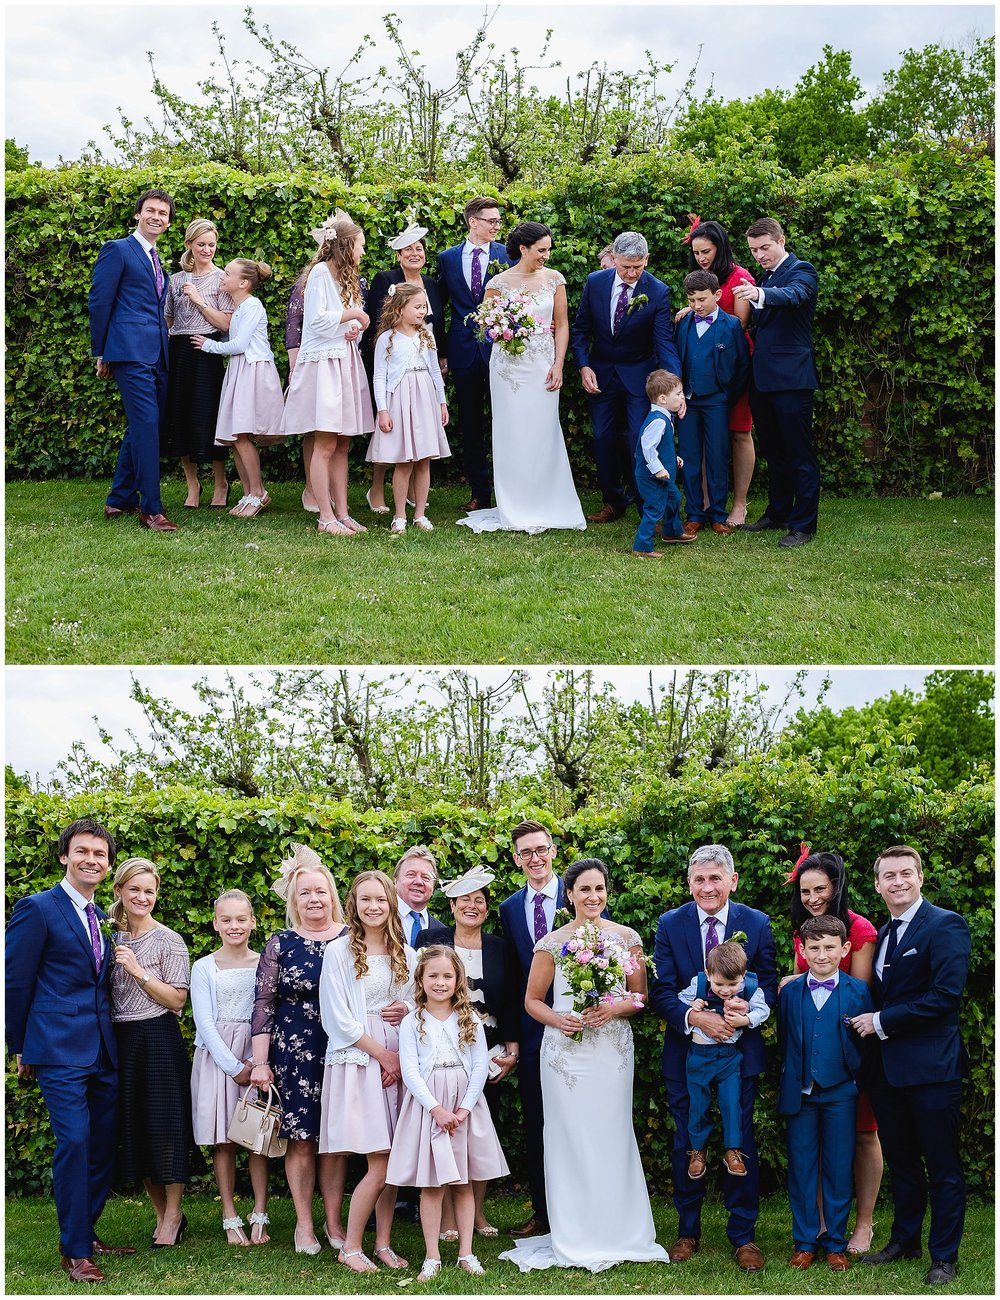 Wedding family portrait at Suffolk Barn wedding